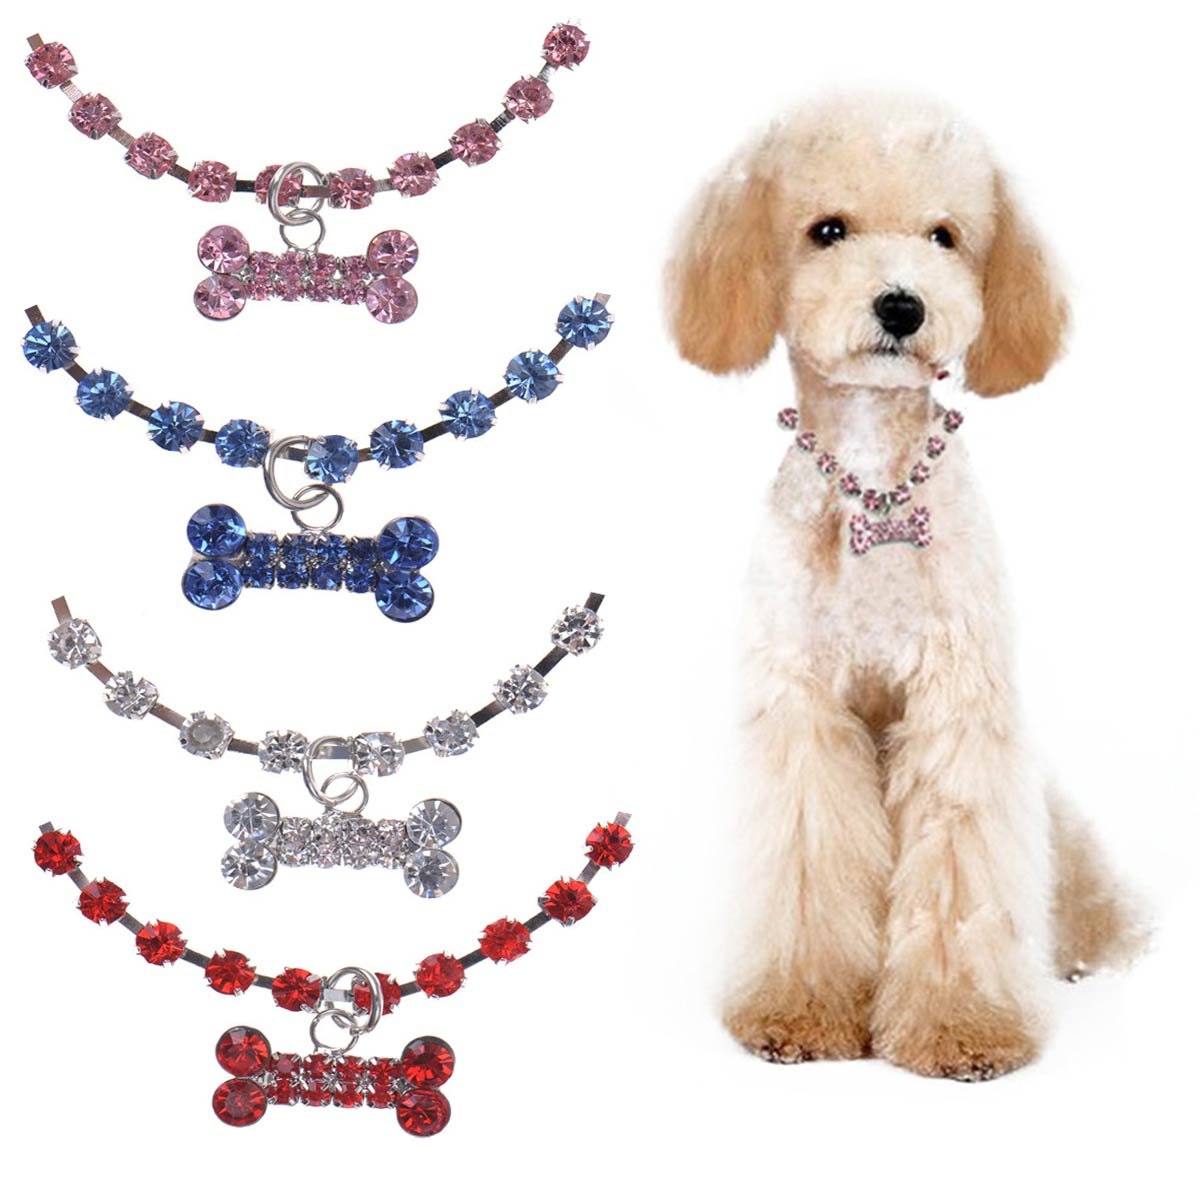 Rhinestone Dog Necklace